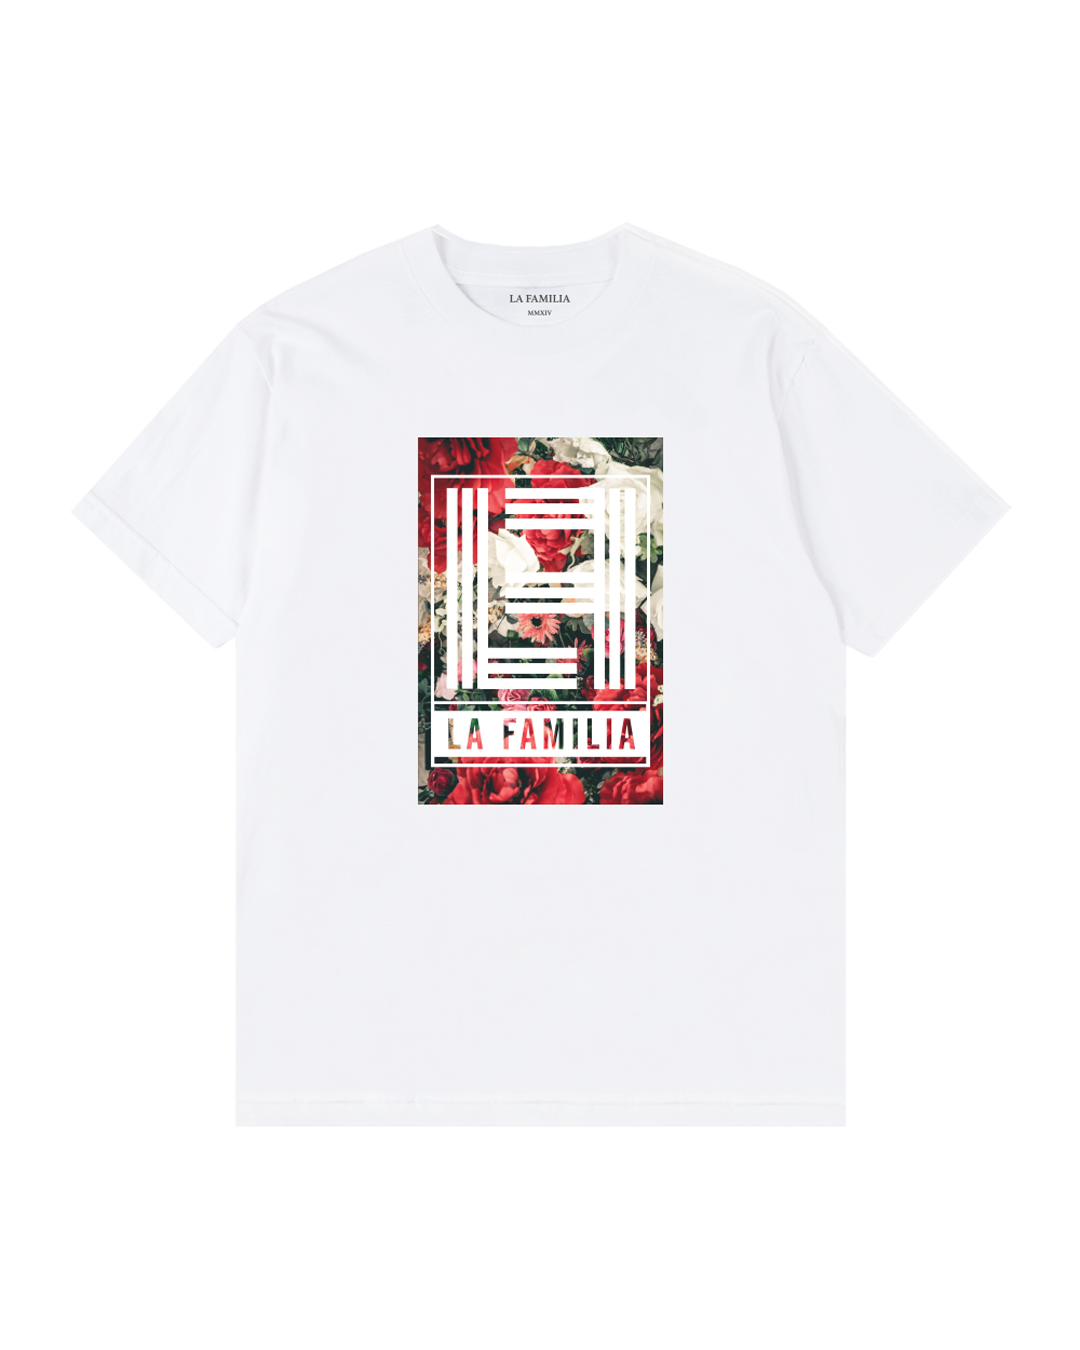 FLOWER BED SS TEE - LA FAMILIA MMXIV